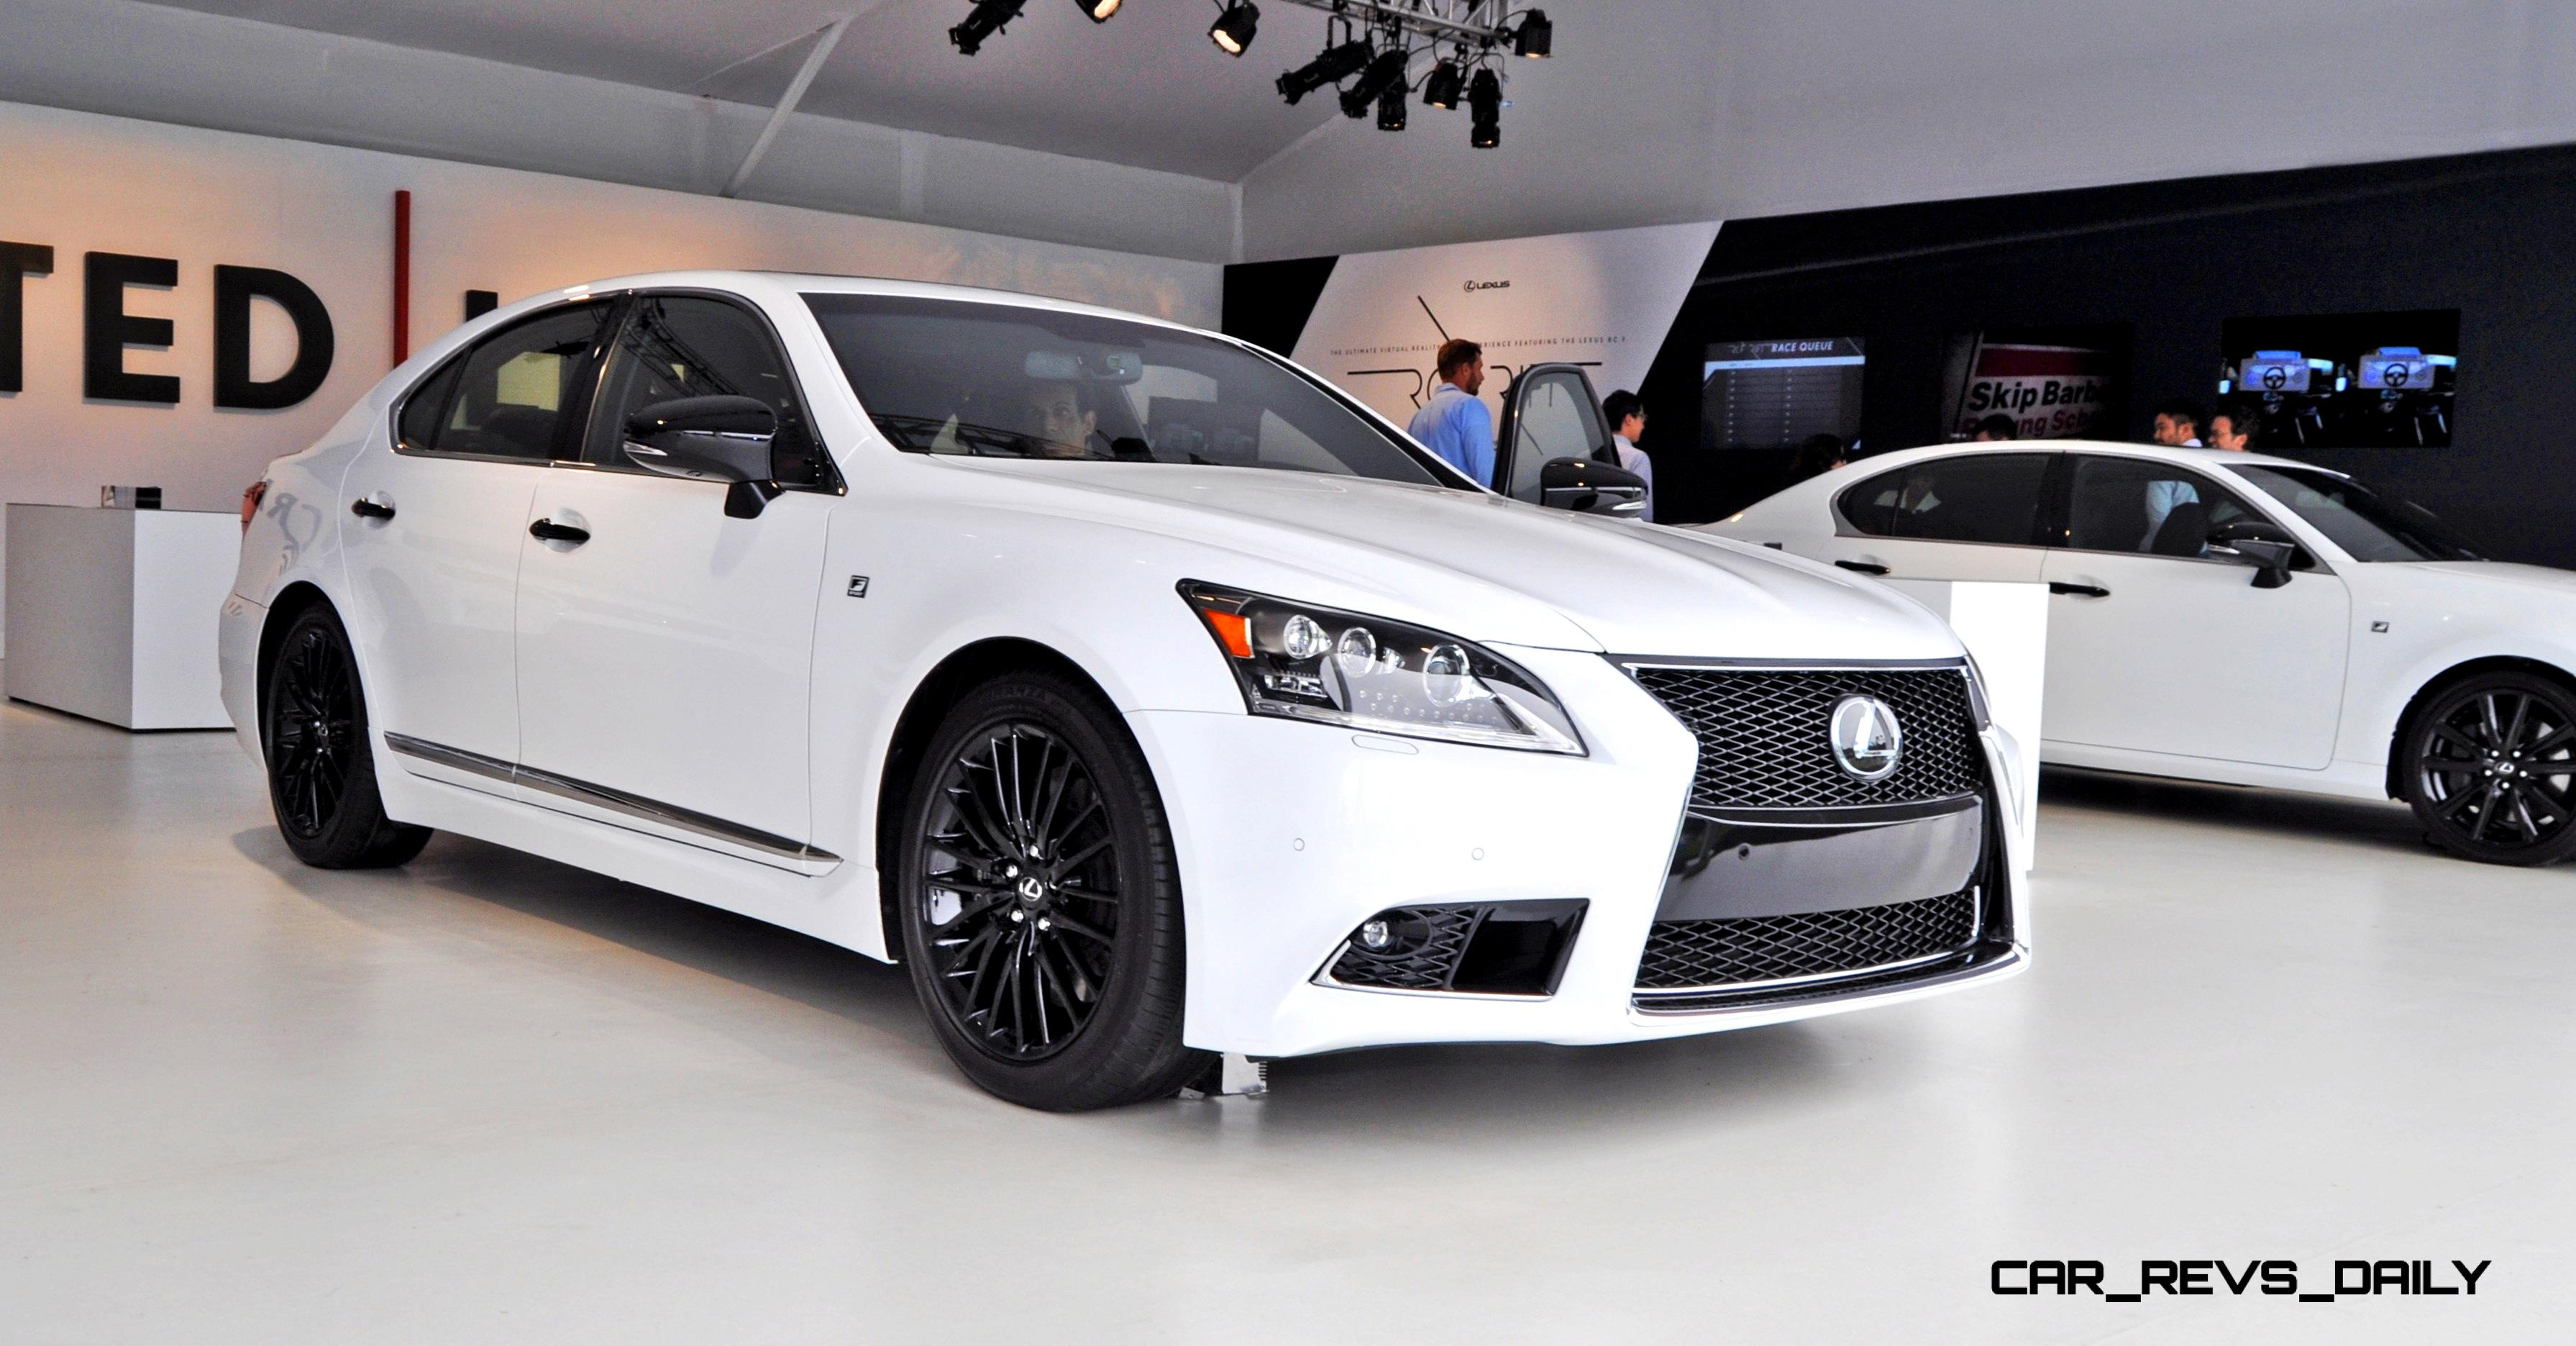 Car Revs Daily 2017 Lexus Ls460 F Sport Crafted Line Is Most Enhanced By Glossy Black And White Makeover 25